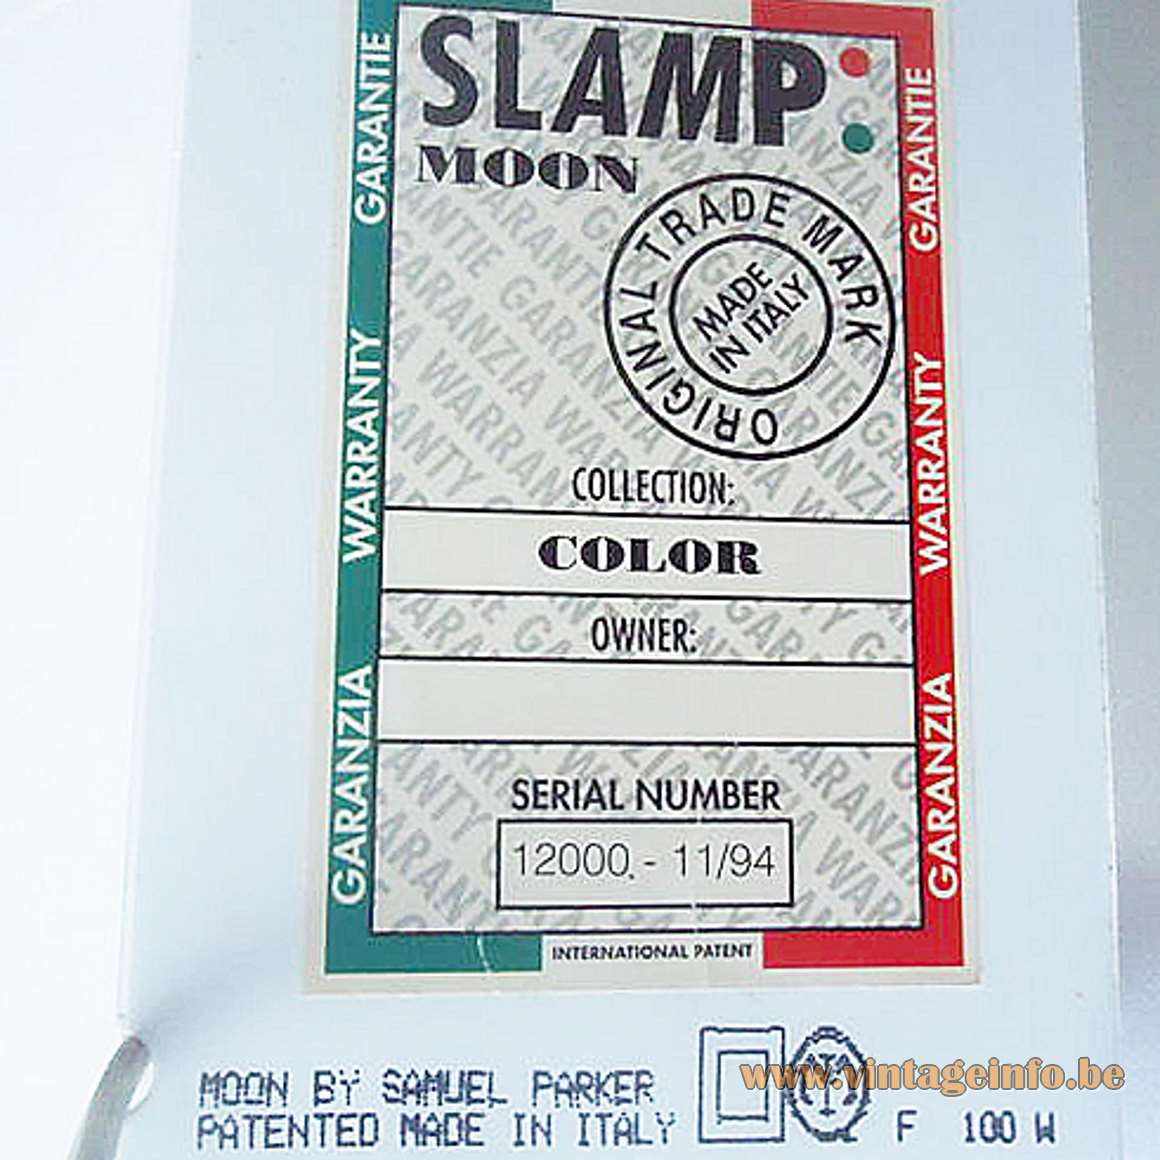 Slamp Moon Table Lamp - November 1994 label